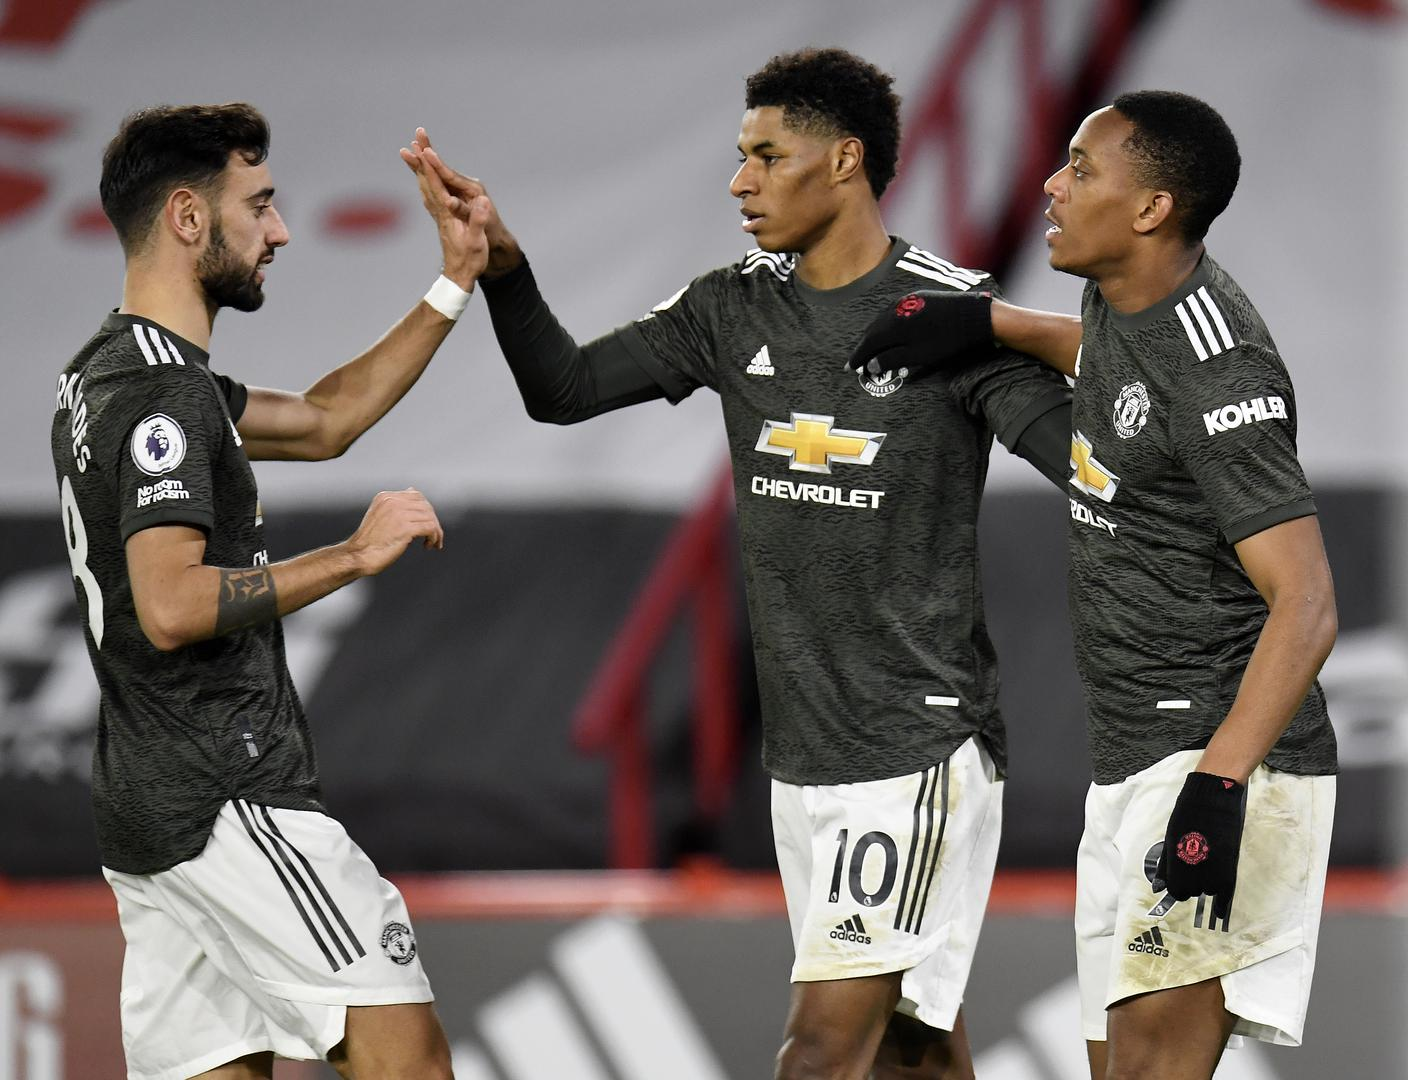 Bruno Fernandes, Marcus Rashford and Anthony Martial